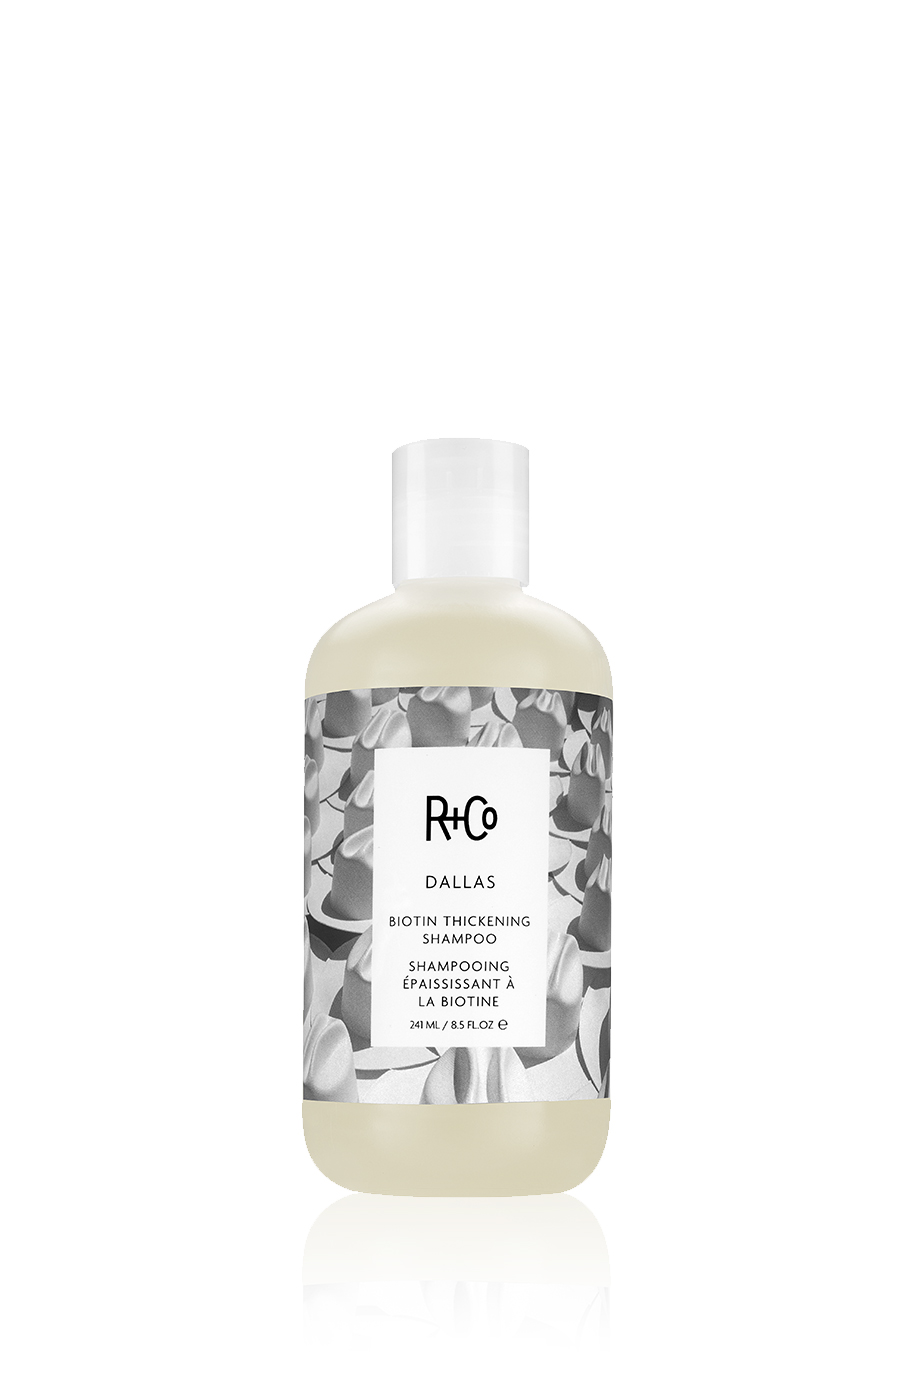 R+Co DALLAS Biotin Thickening Shampoo/ДАЛЛАС шампунь с биотином для объема 241 мл